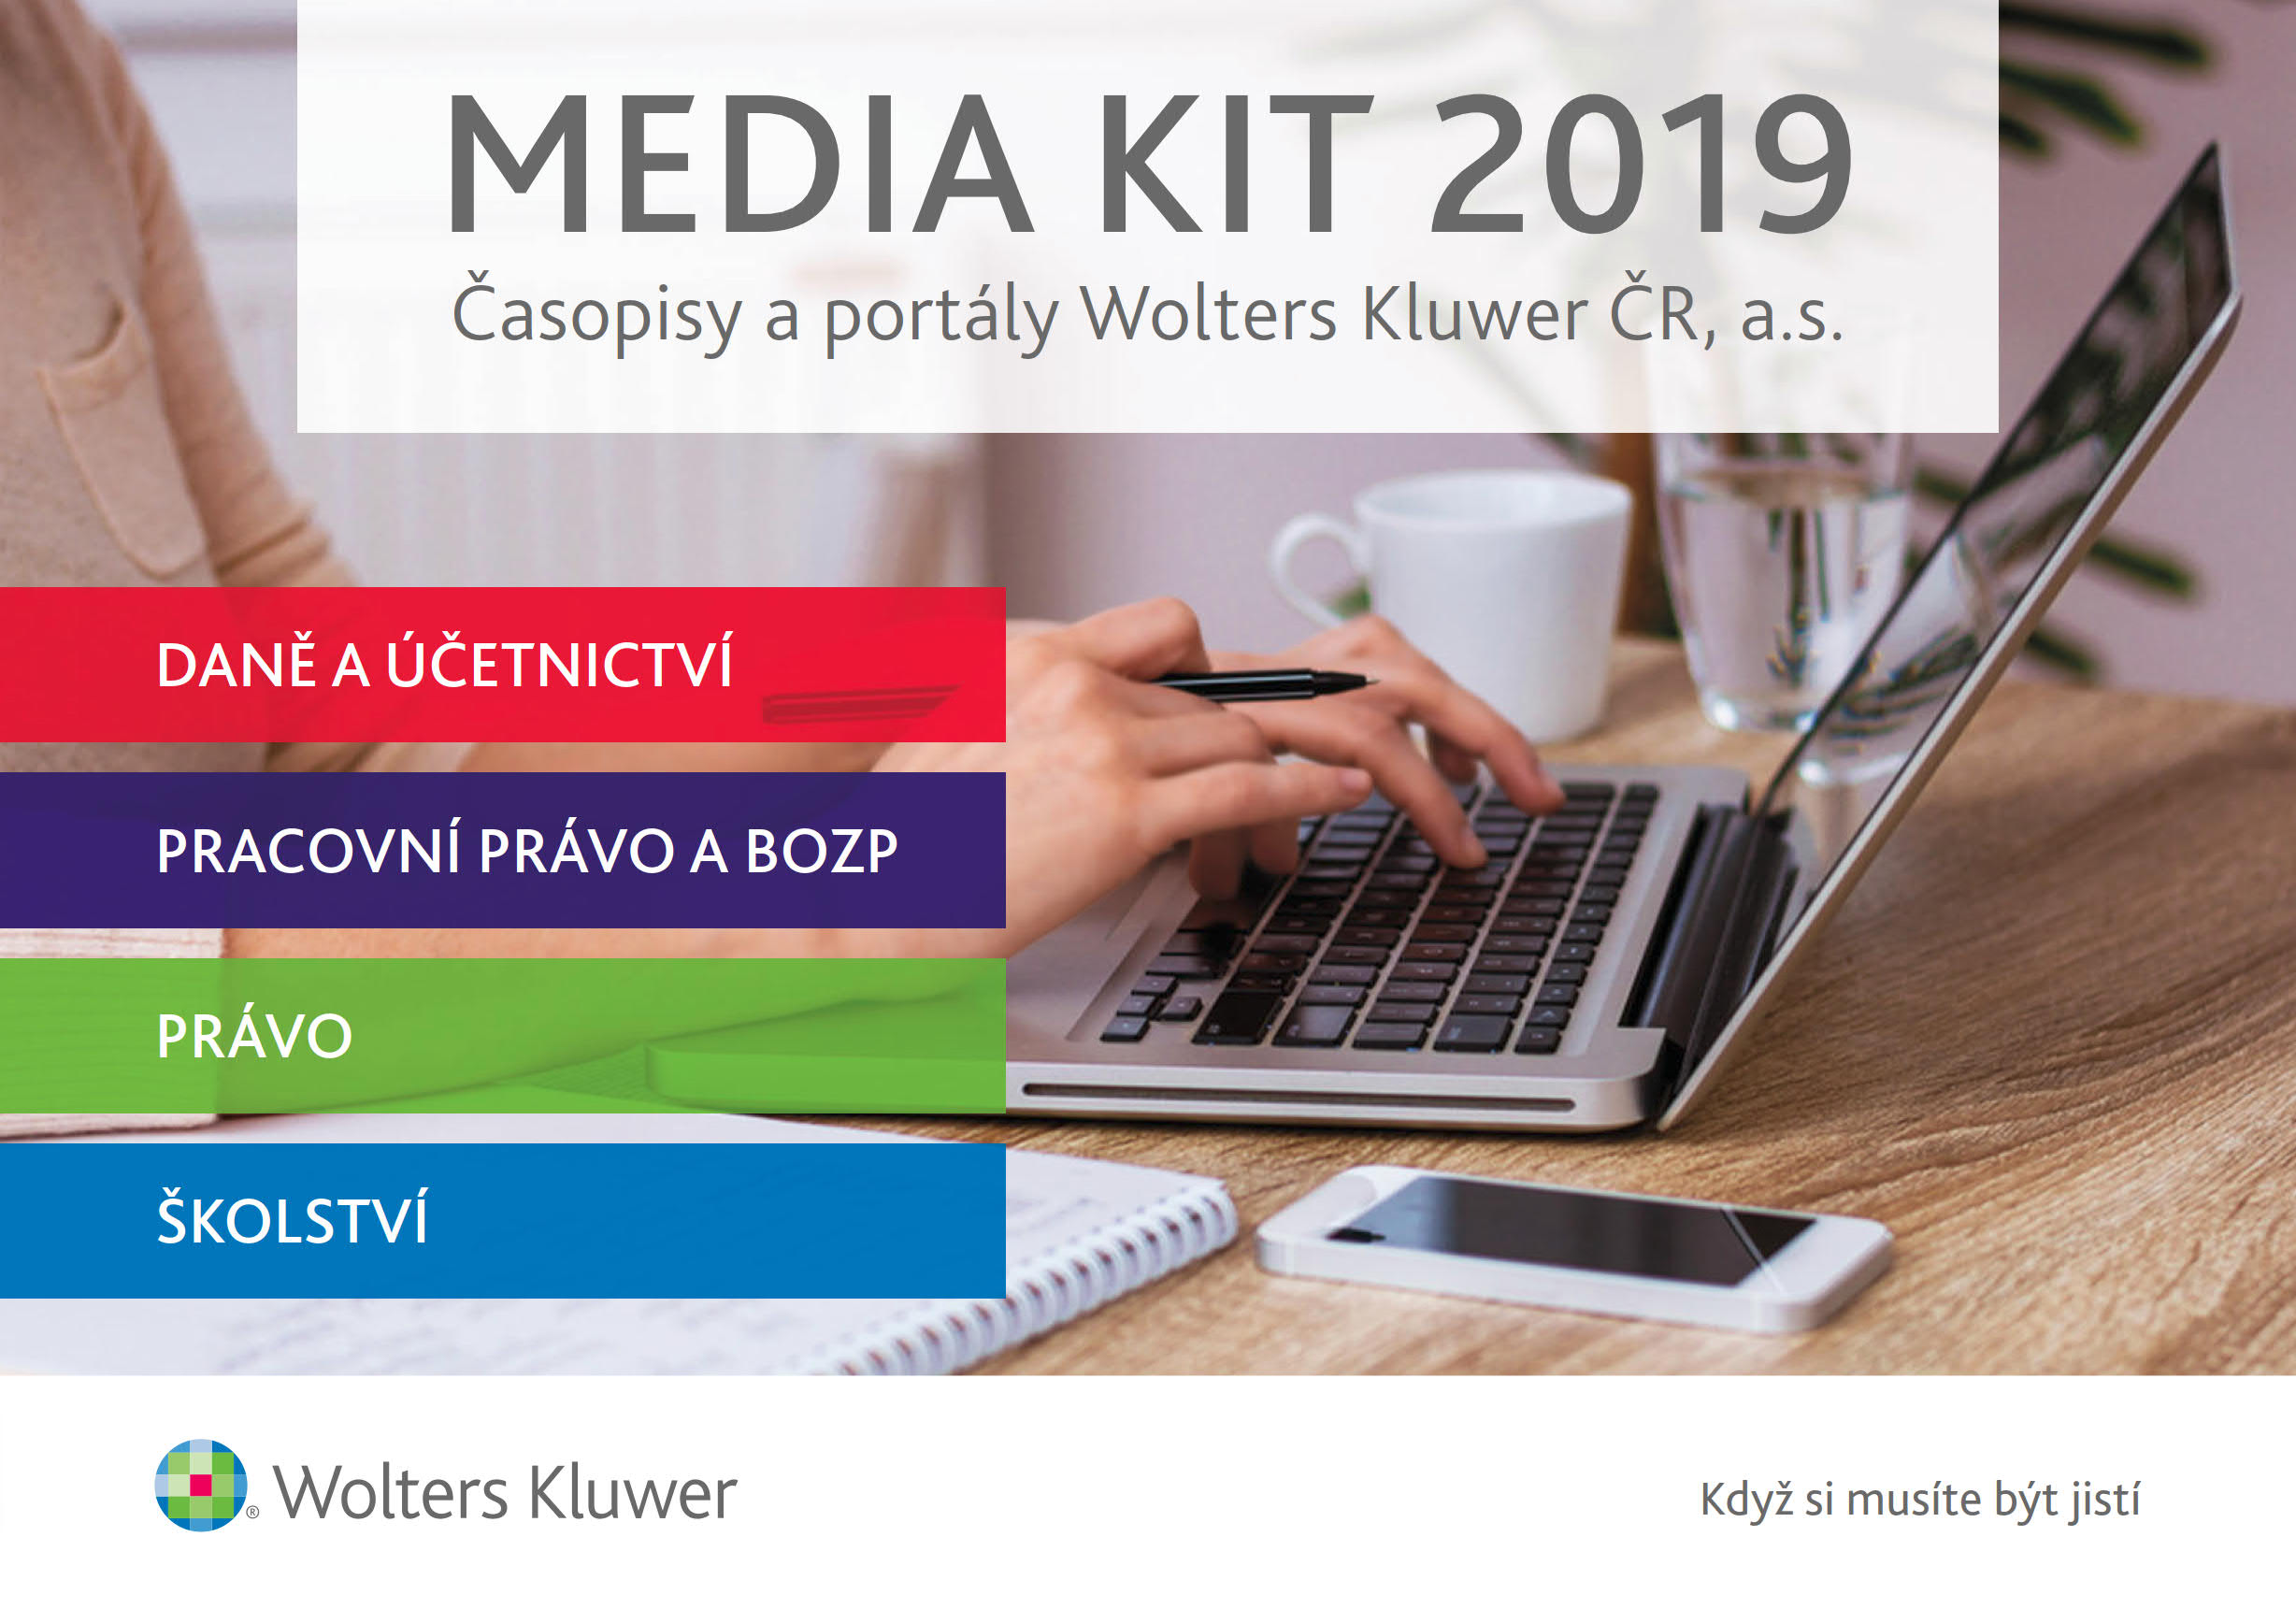 Mediakit Wolters Kluwer 2019